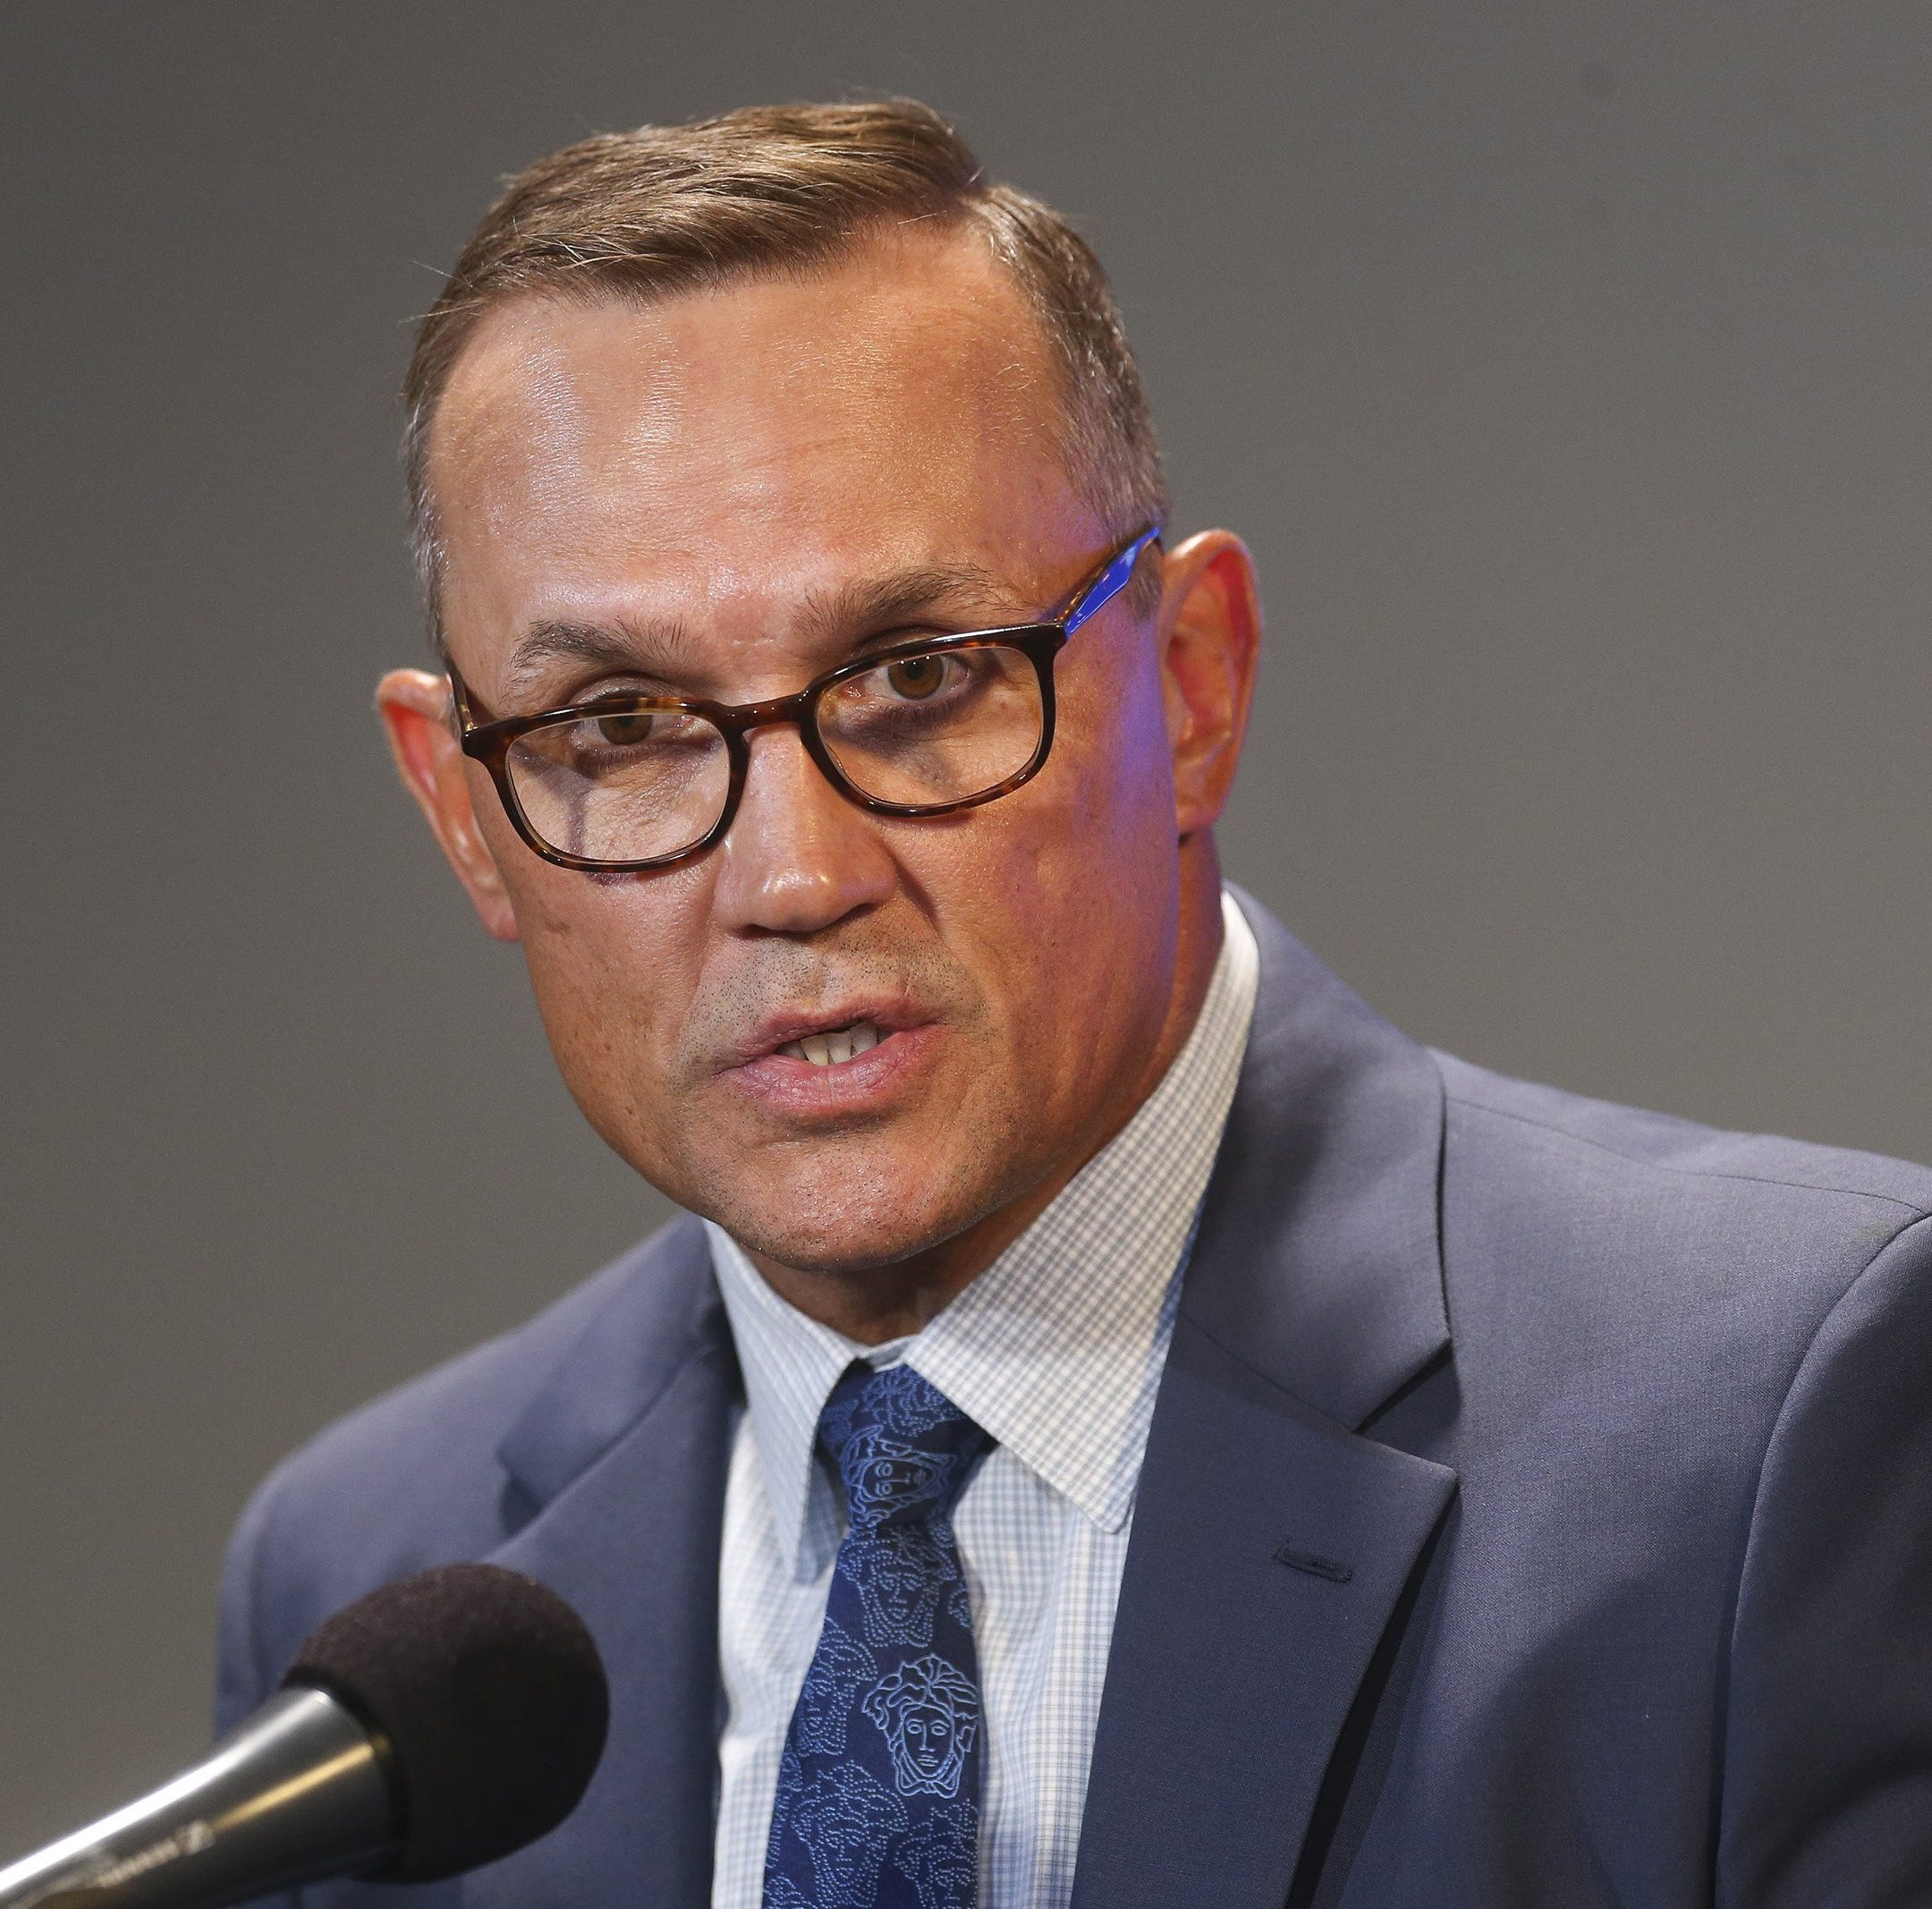 Steve Yzerman's track record as a GM: Plenty for Detroit Red Wings to like